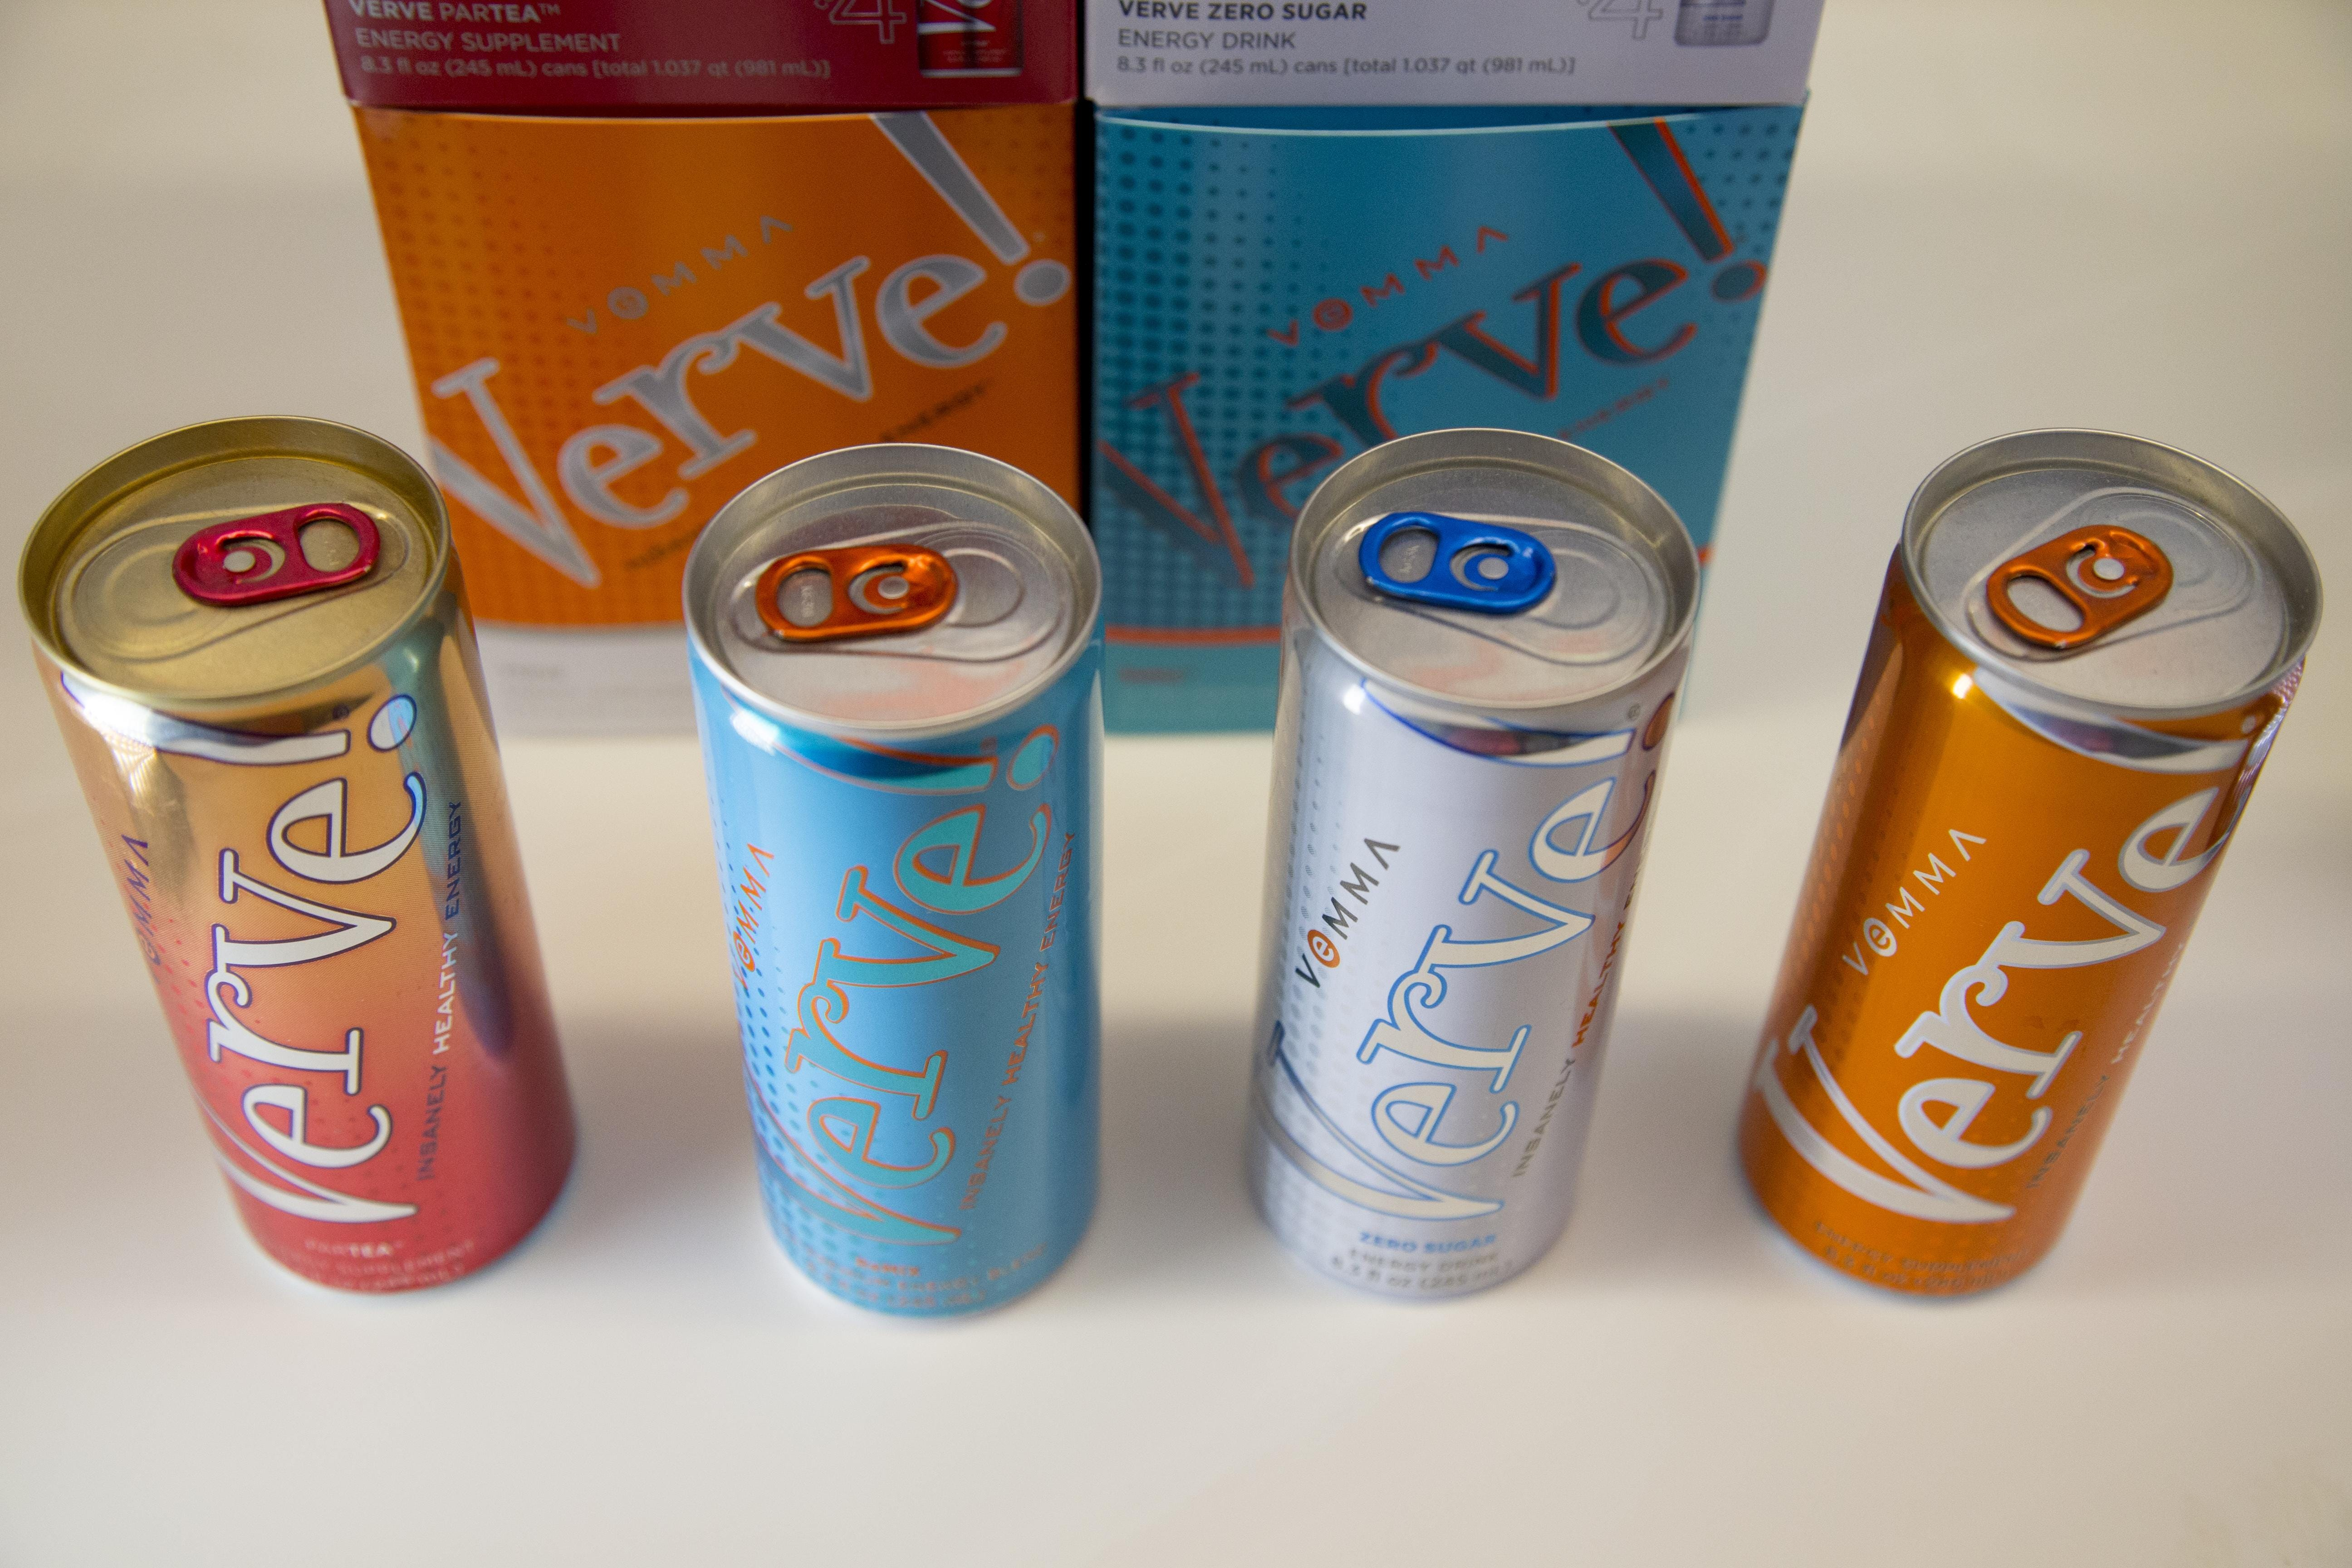 How does vemma work